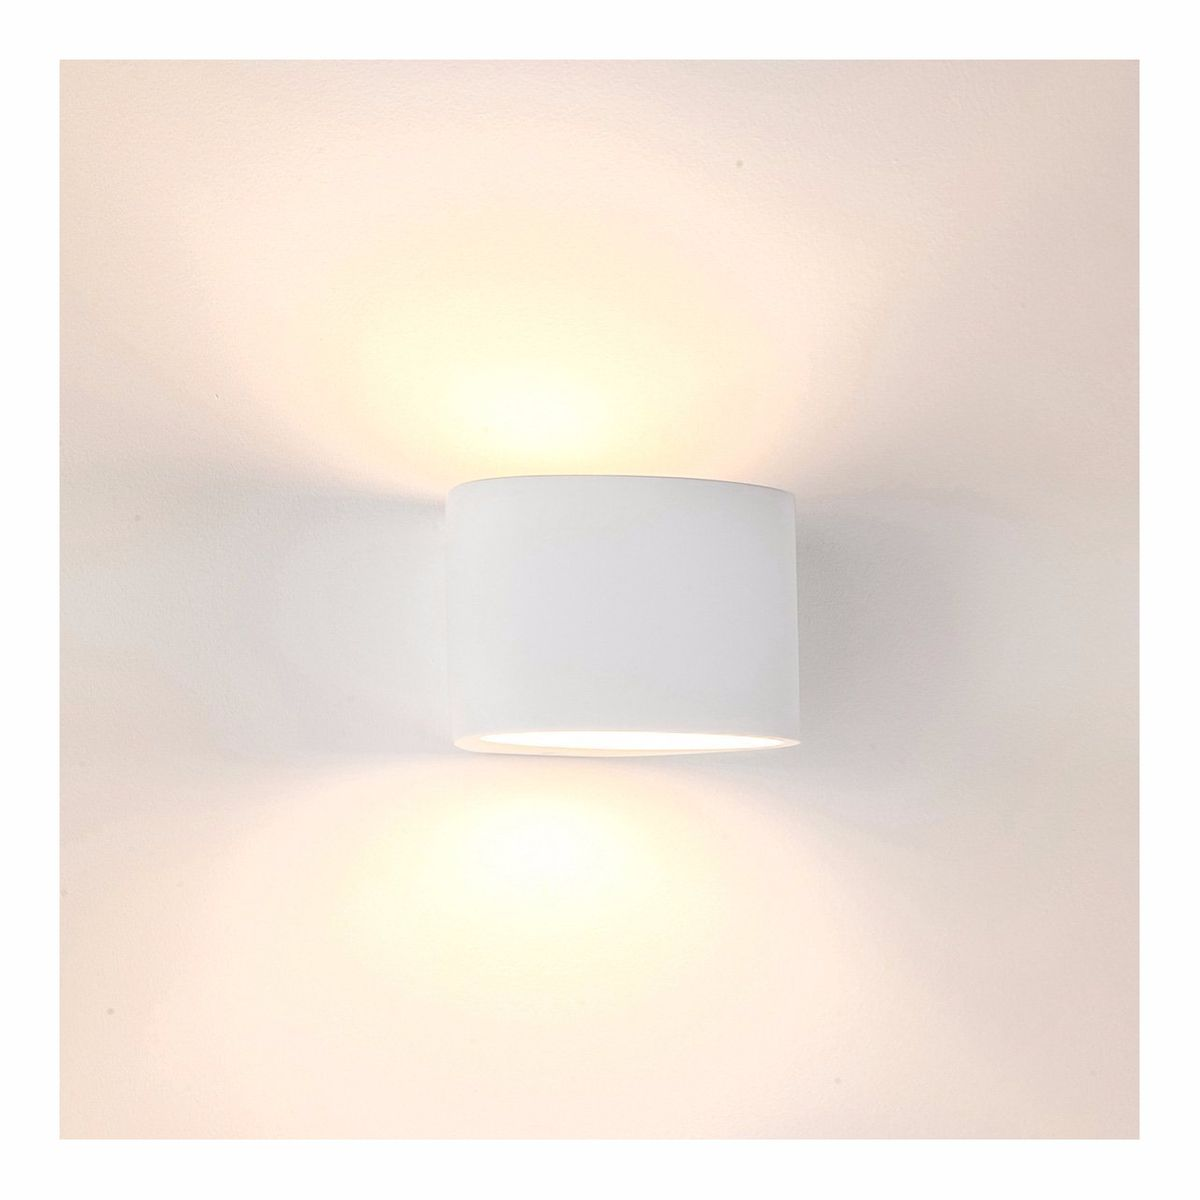 HV8025 - Arc Small LED Wall Plaster Light – Bild 1